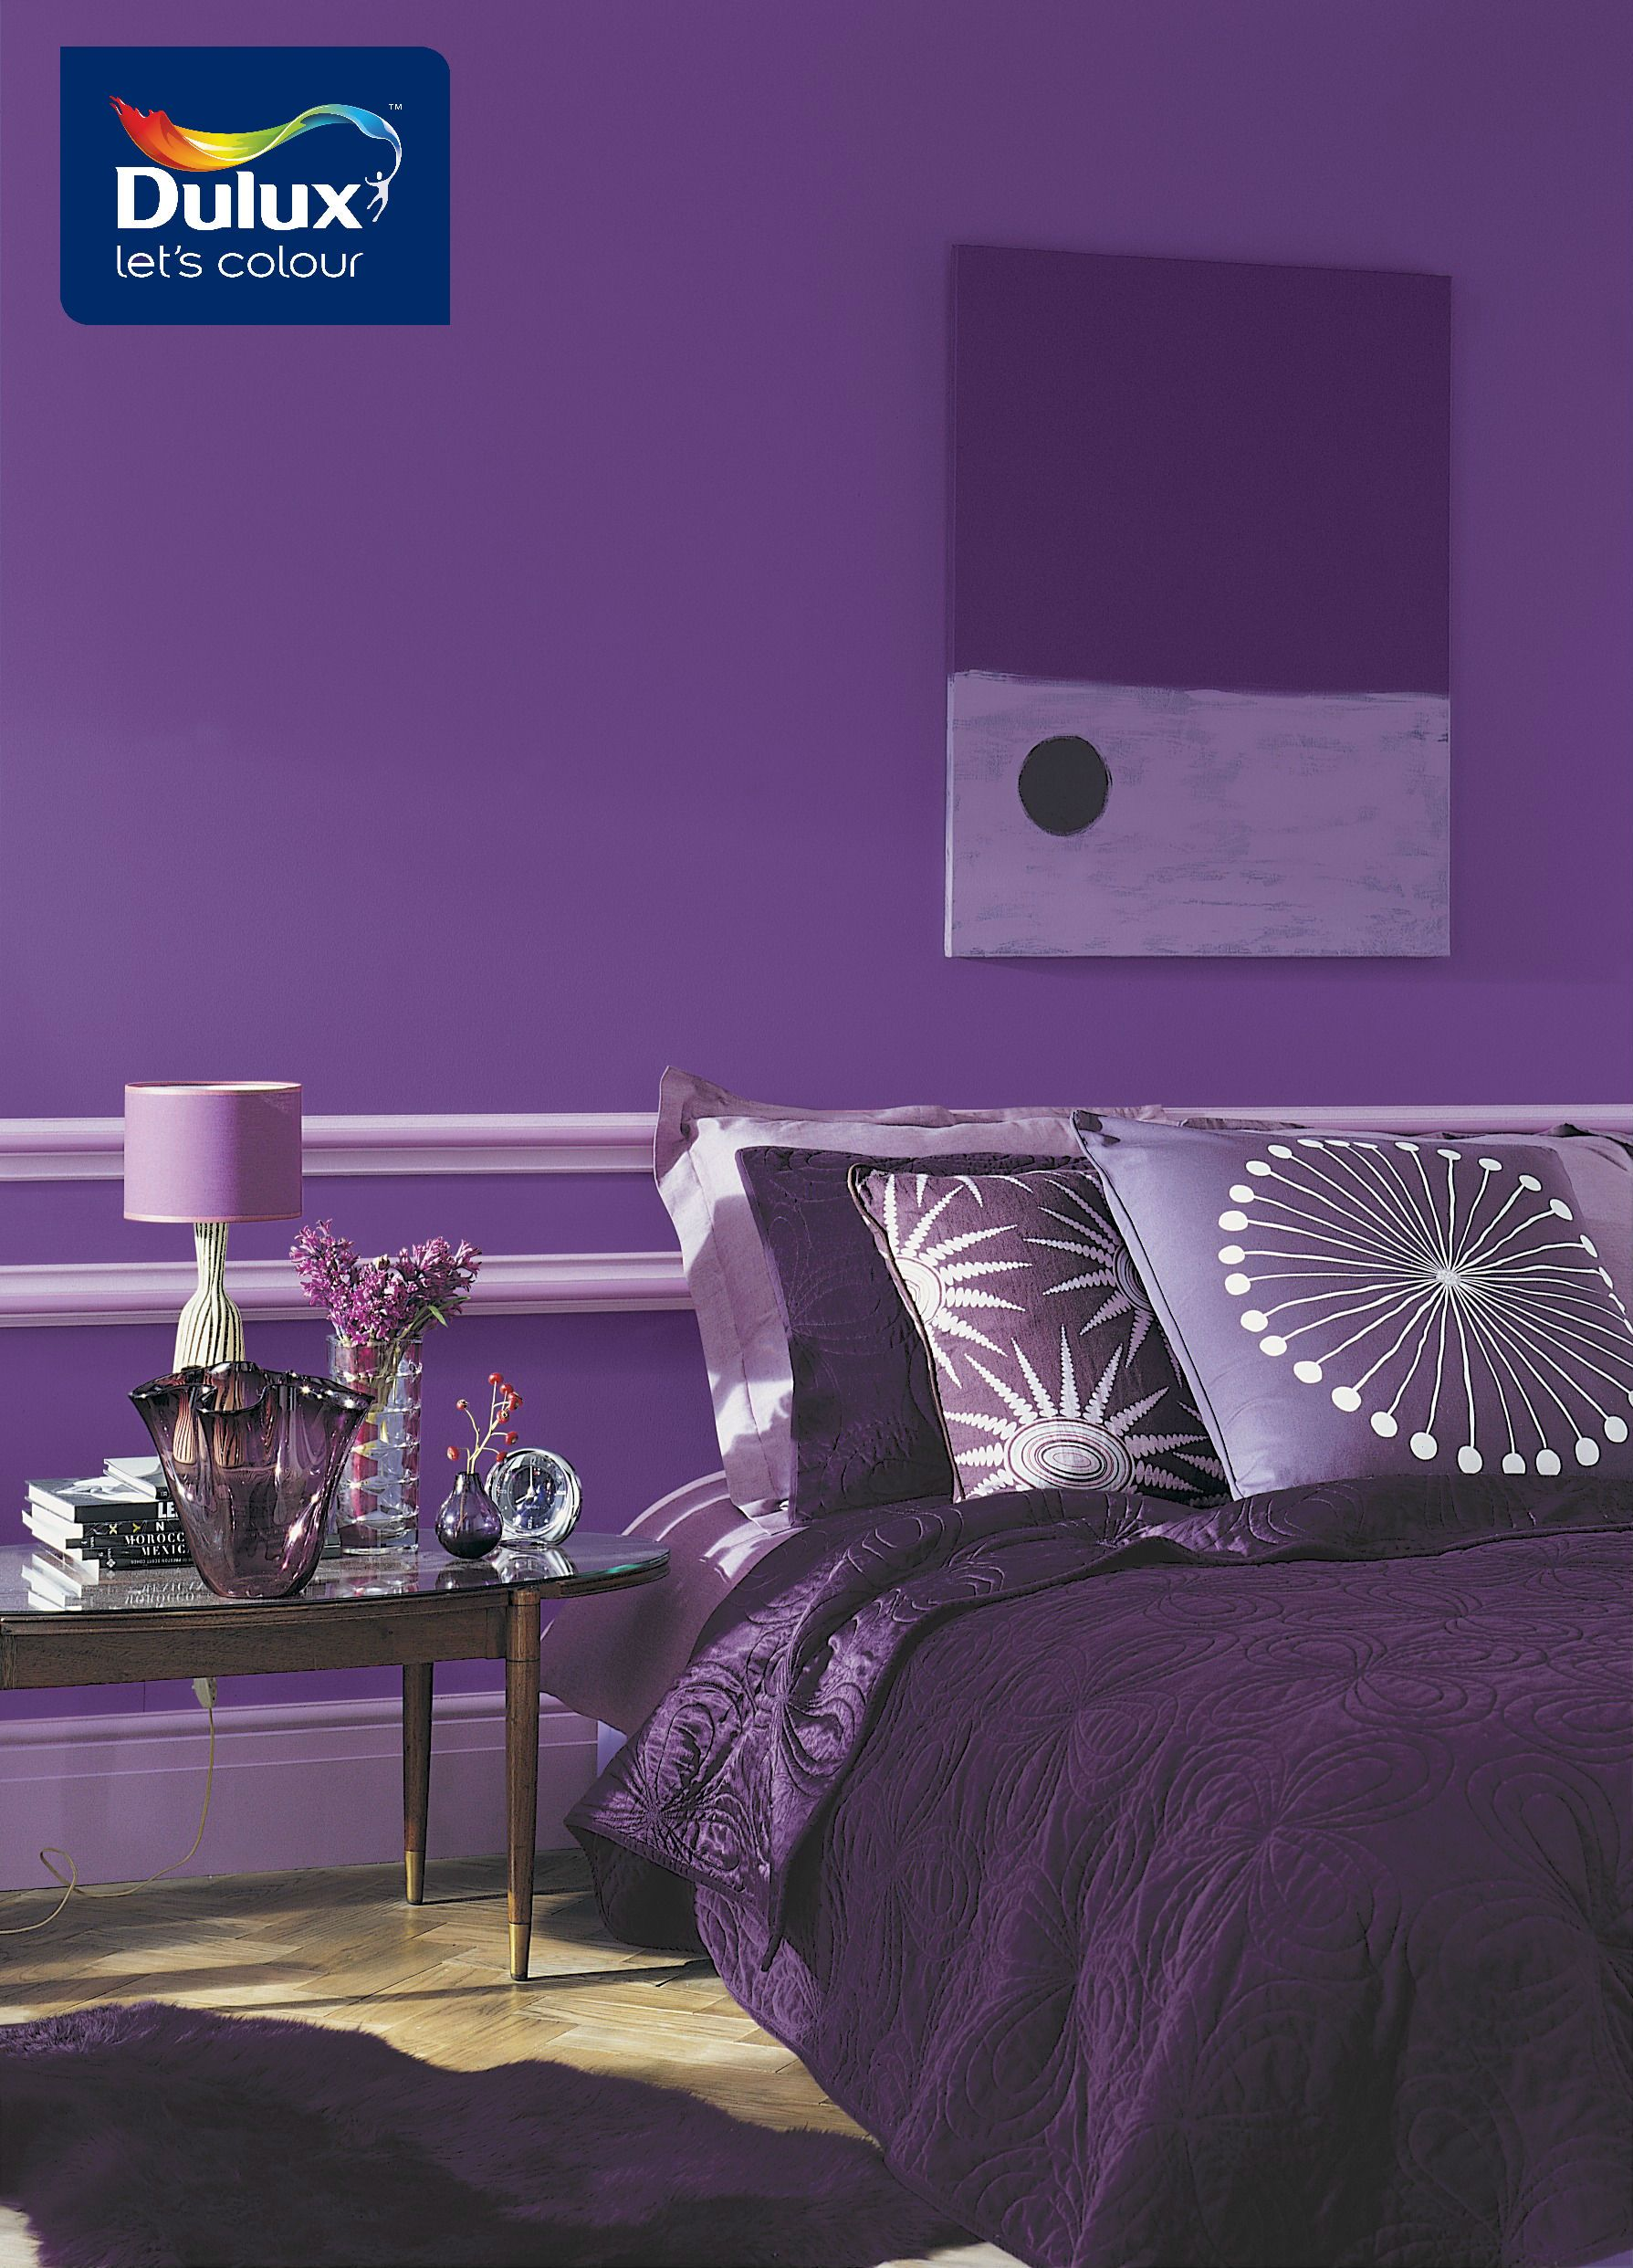 More on designer jamie drake the king of color simplified bee - Violet Is The Colour Of The Kings Add A Splash Of Luxury To Your House